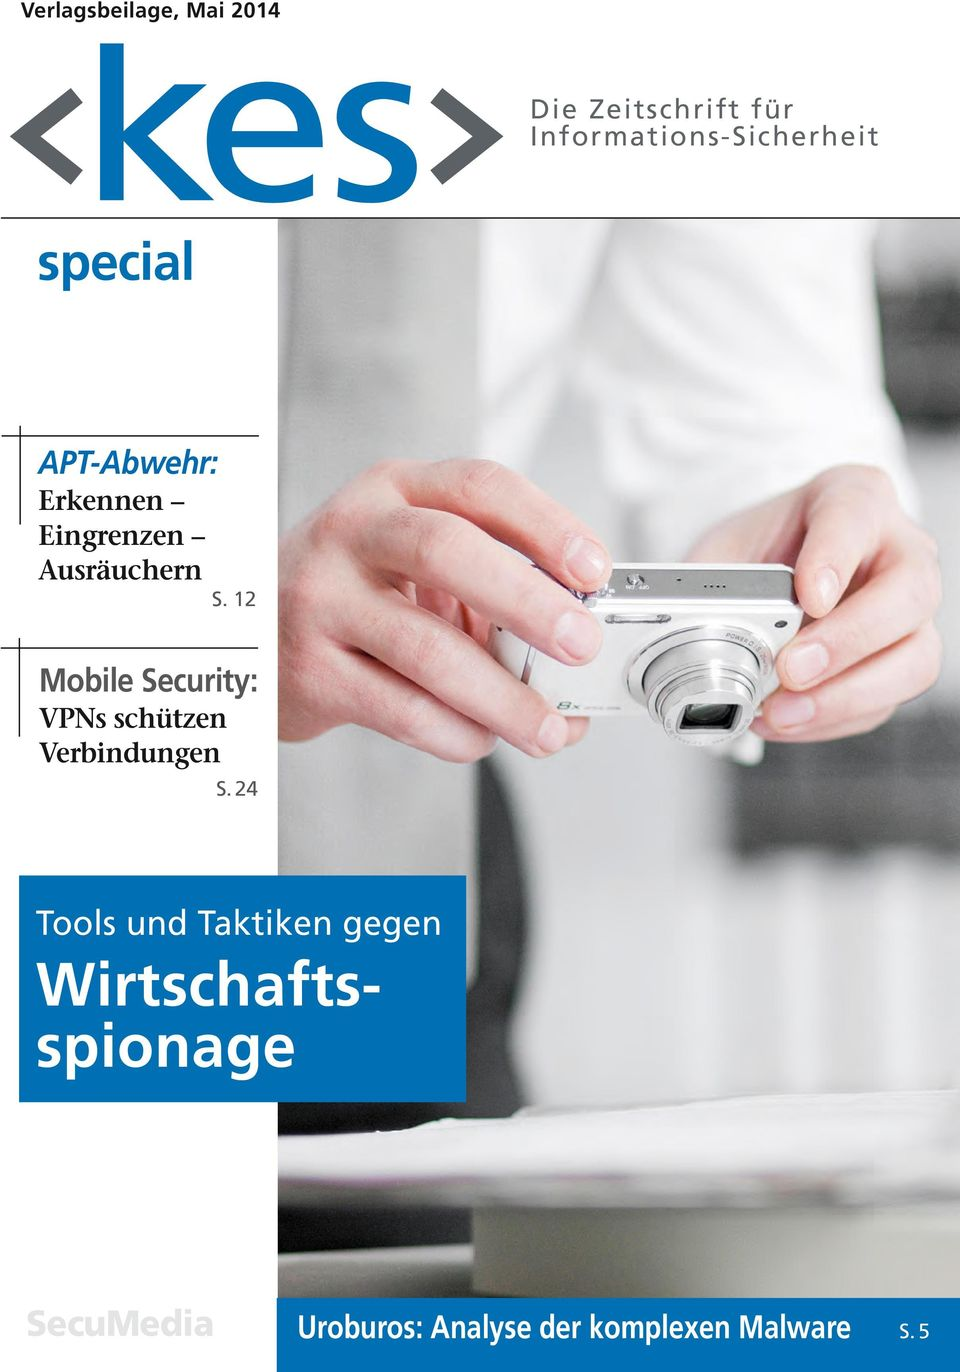 12 IT-Security Mobile Security: VPNs schützen Verbindungen S.